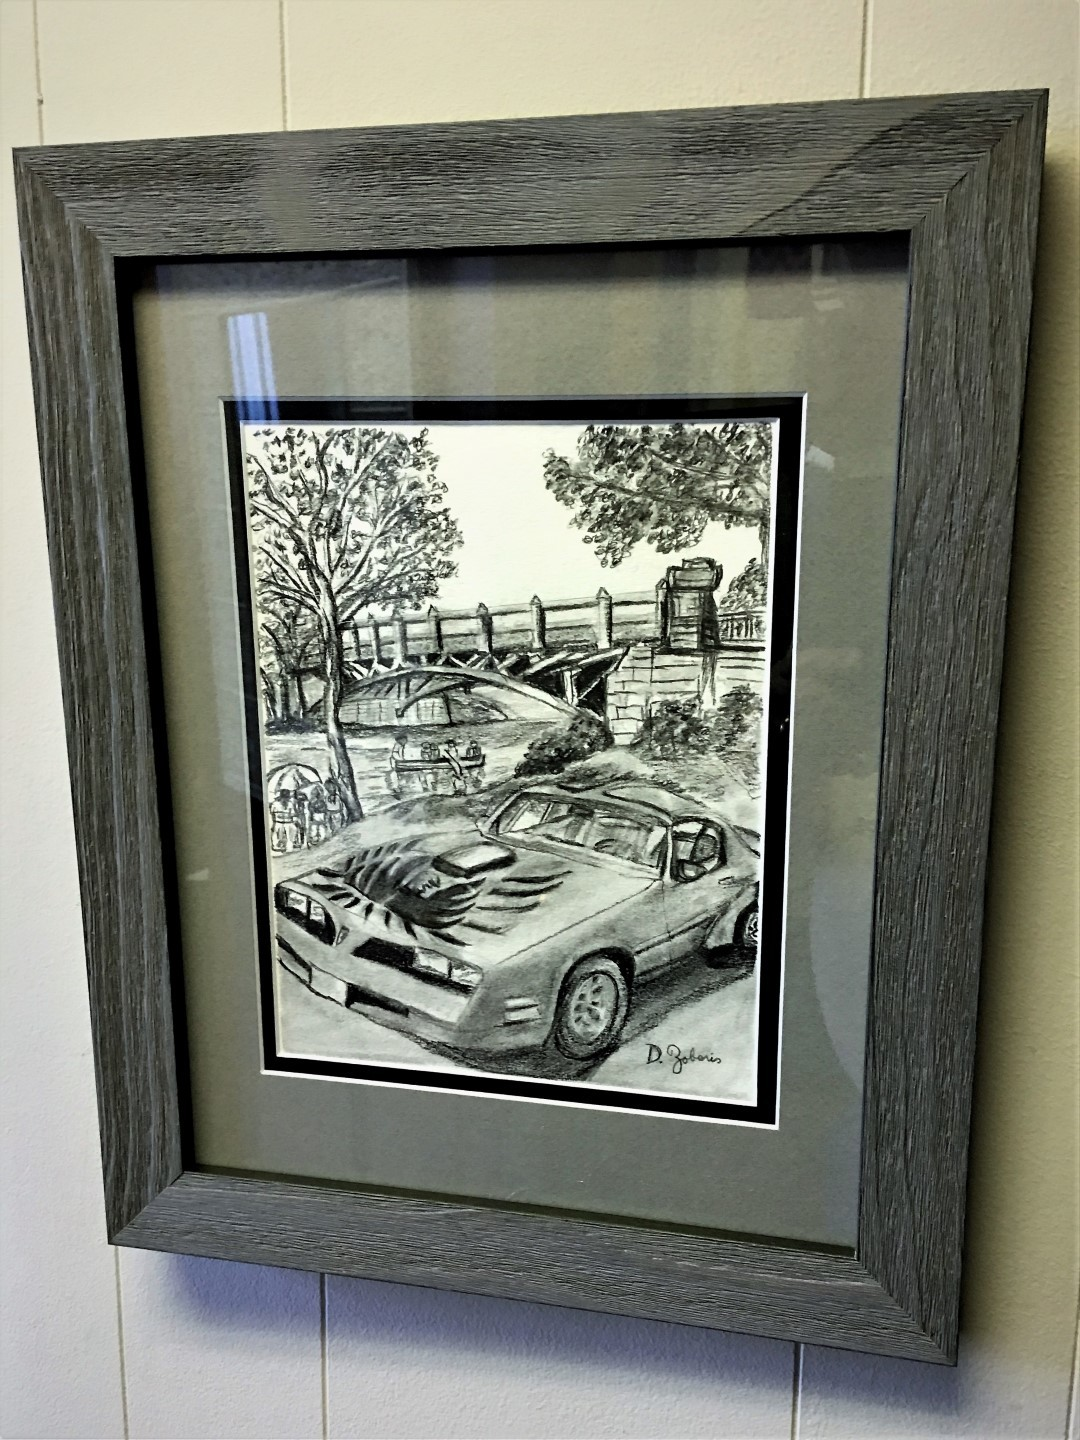 Martingale_Road_Framed_Graphite__Drawing